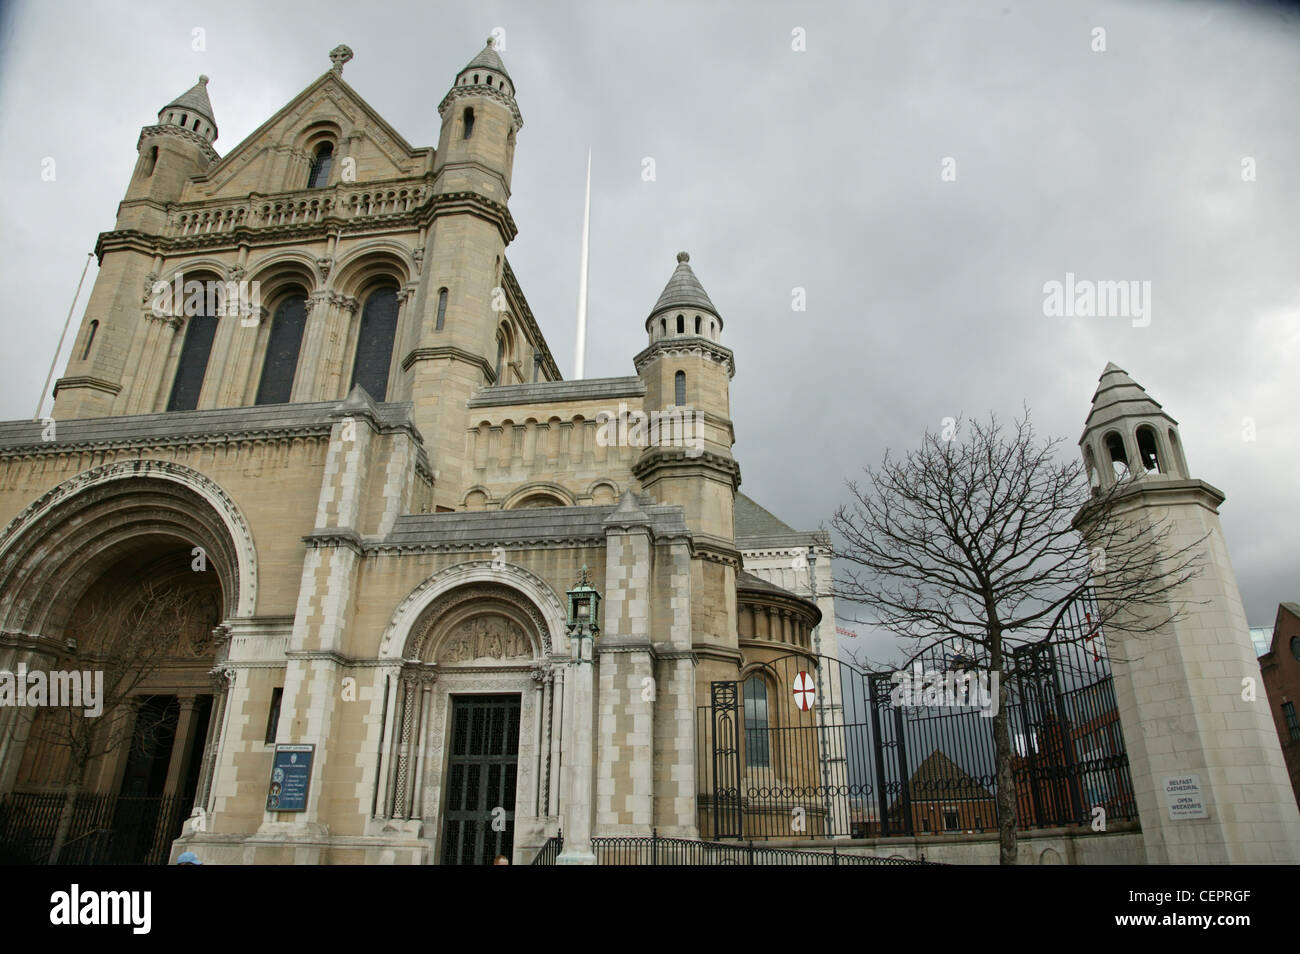 Exterior view of the front of Belfast Cathedral. - Stock Image